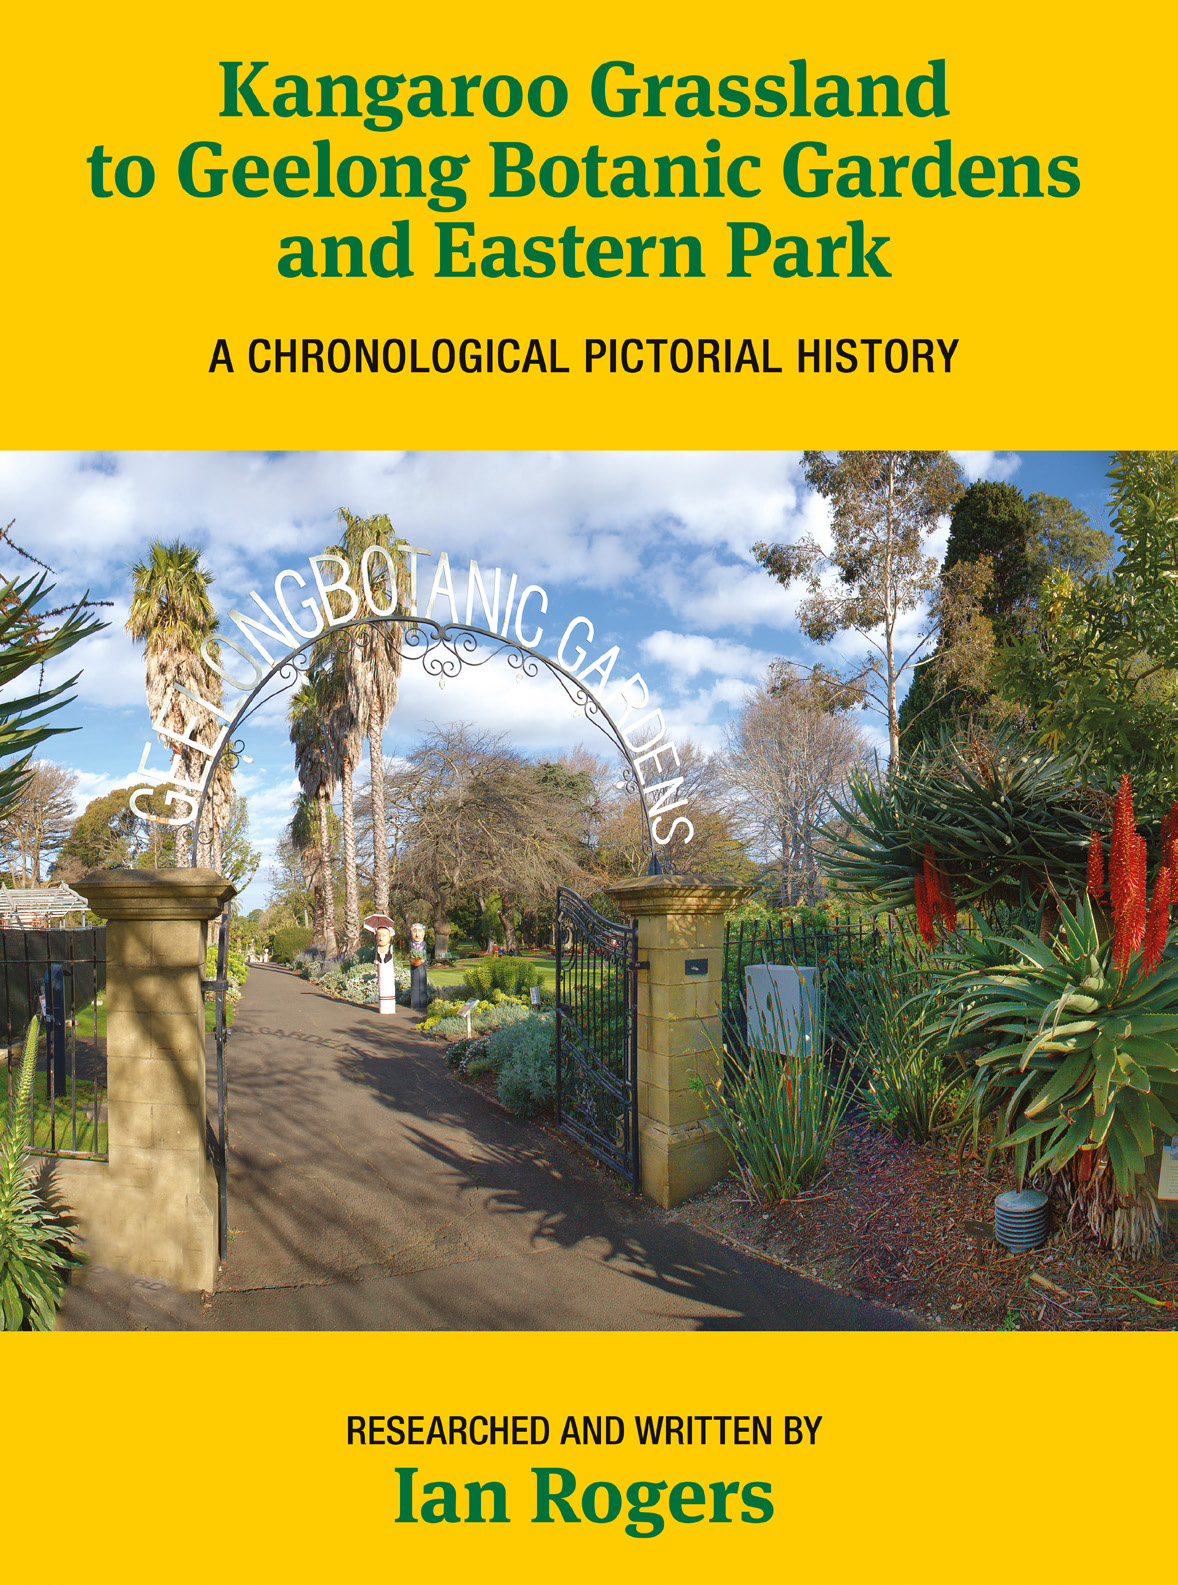 Kangaroo Grassland to Geelong Botanic Gardens and Eastern Park – a chronological pictorial history by Ian Rogers